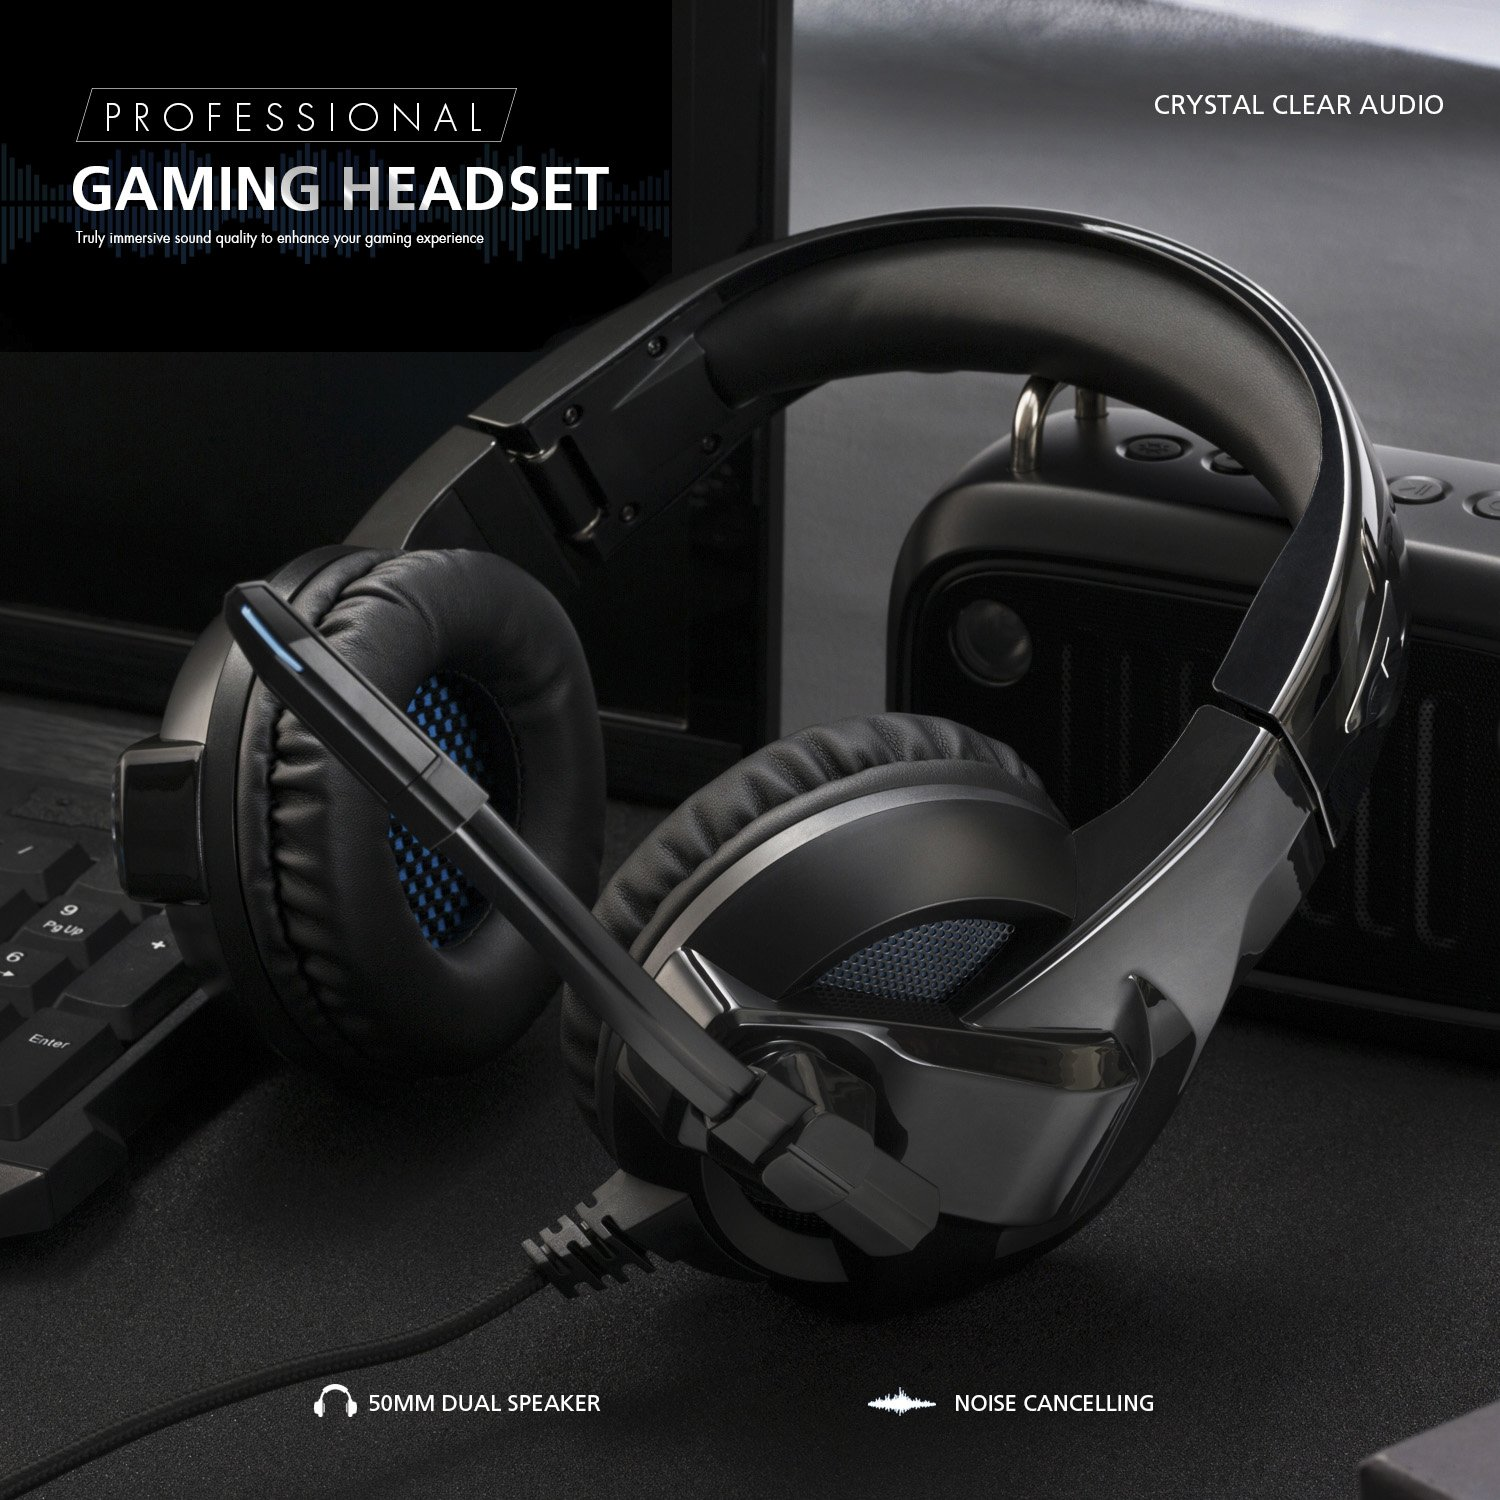 Rimila Stereo Gaming Headset For Ps4 Pc Xbox One Sound Quality Two Output Controller Noise Cancelling Over Ear Headphones With Mic Bass Surround